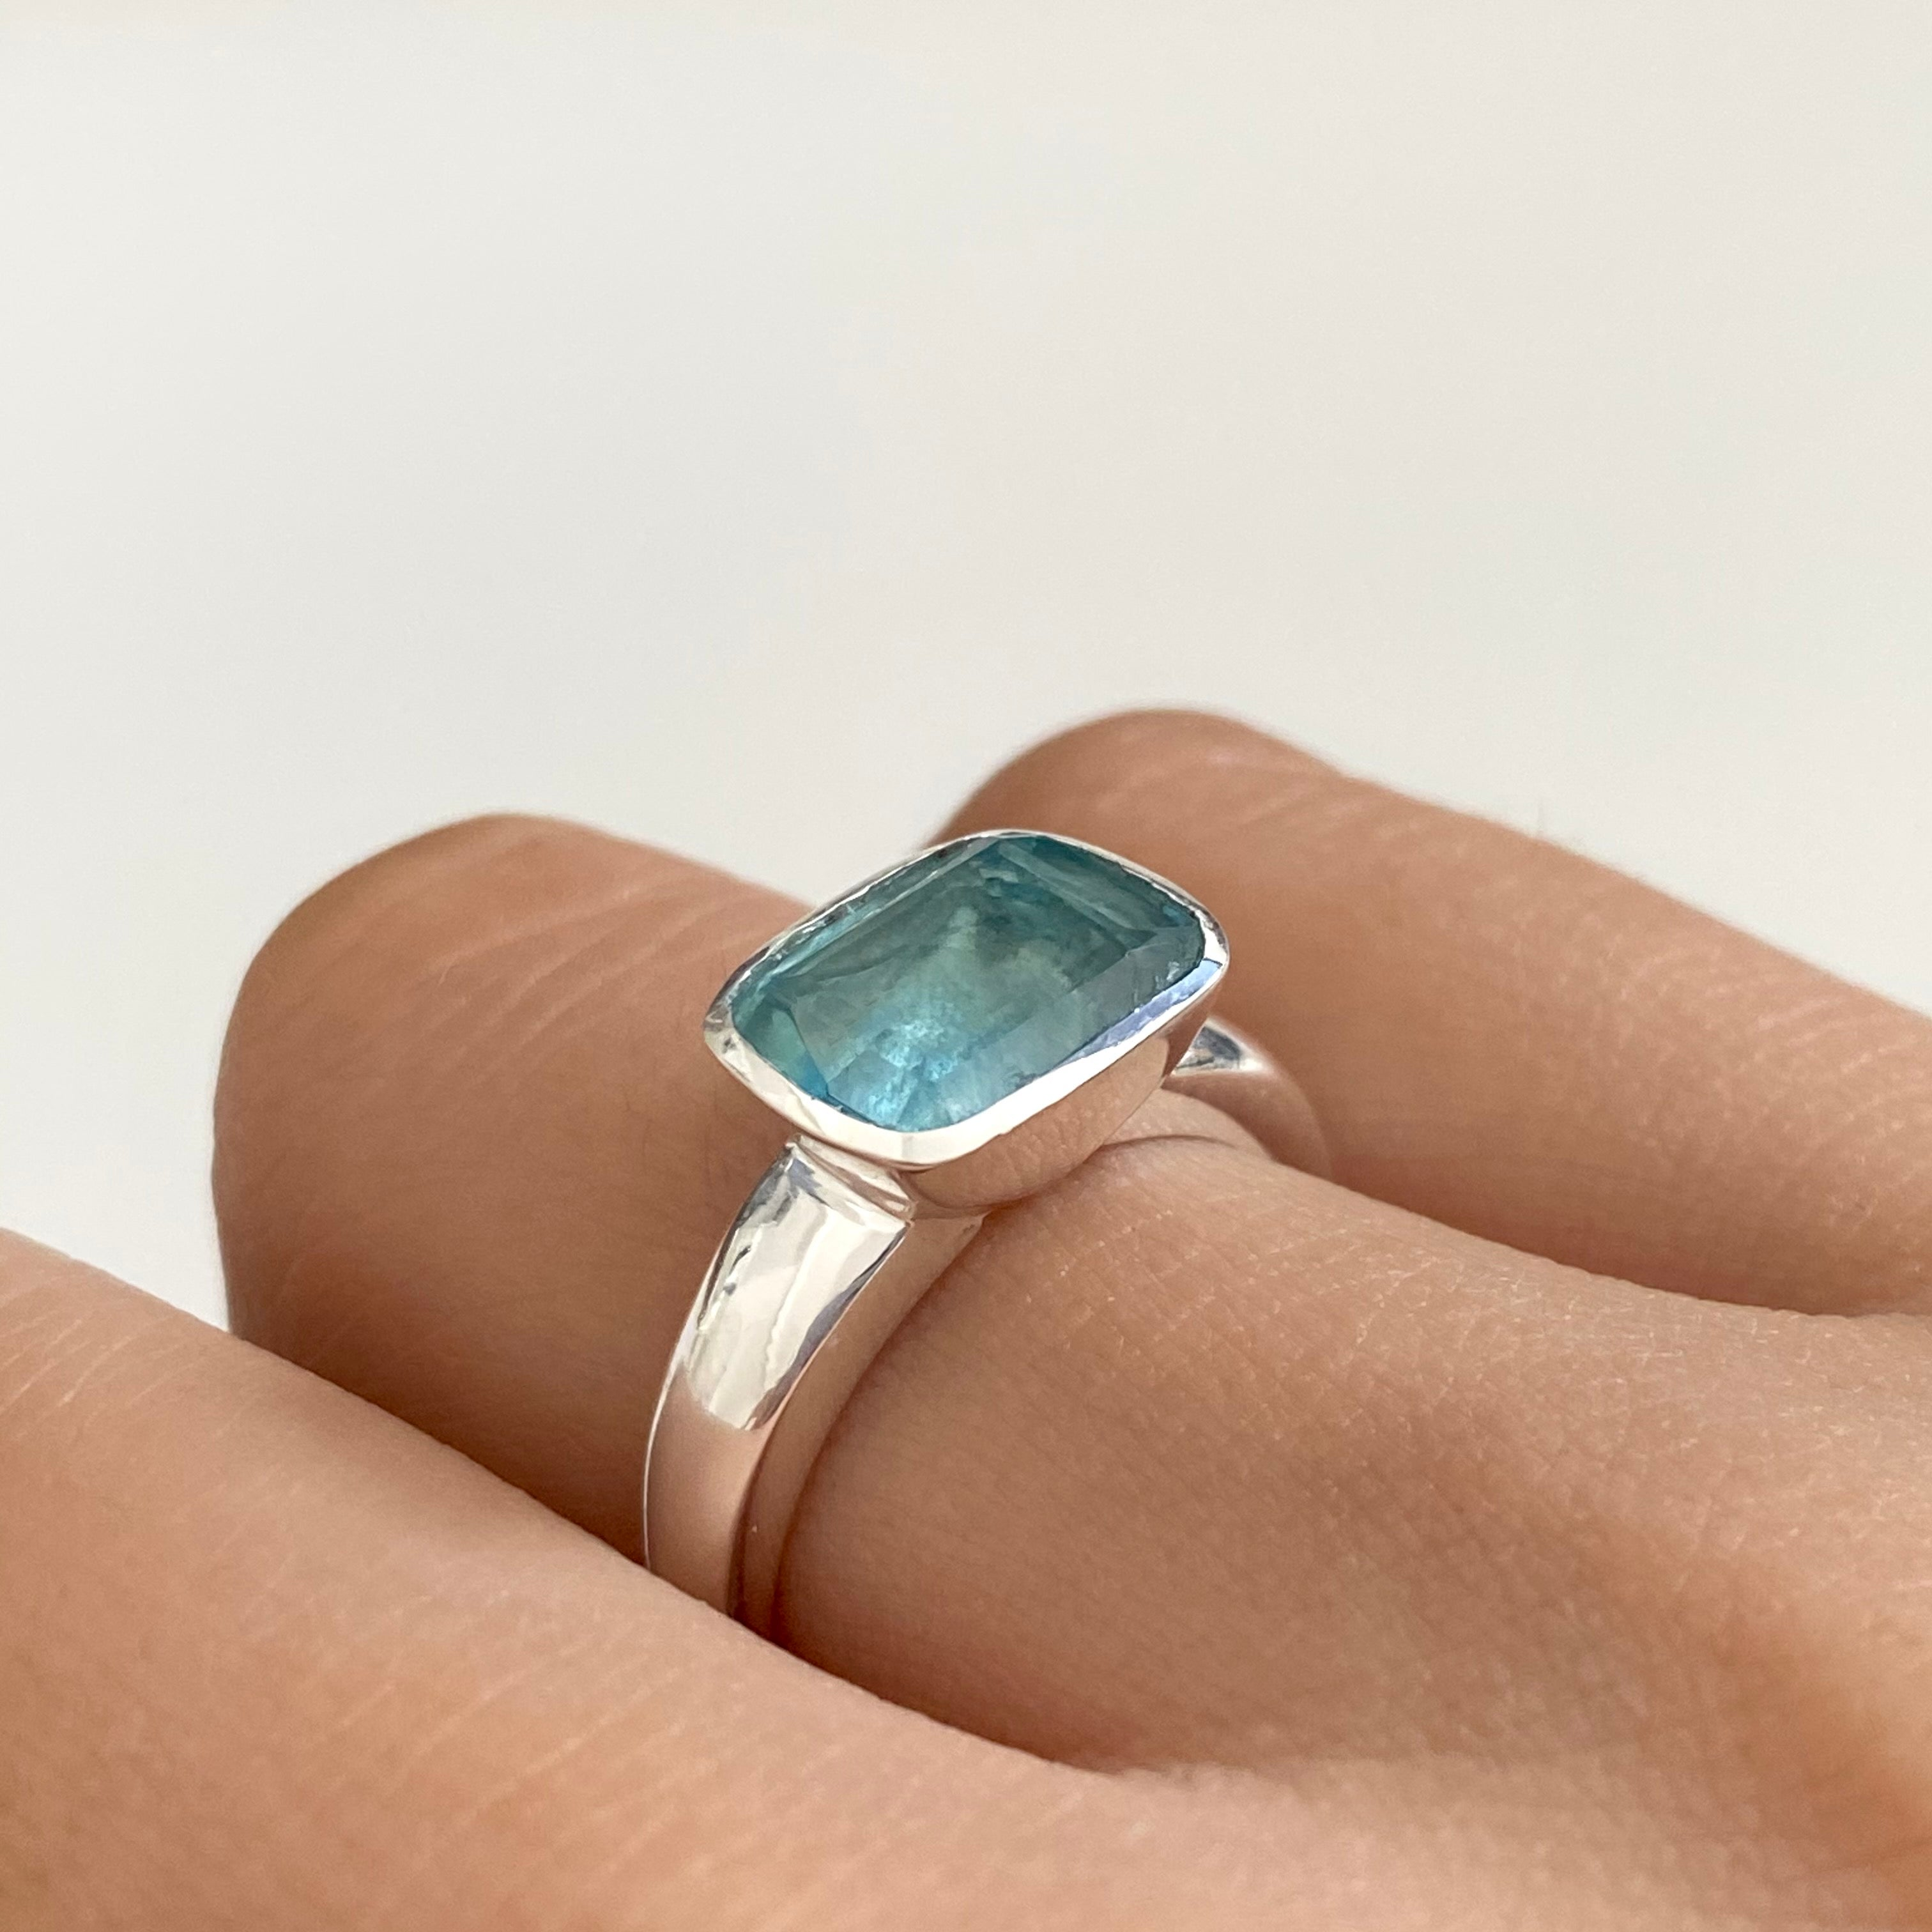 Faceted Rectangular Cut Natural Gemstone Sterling Silver Ring - Apatite